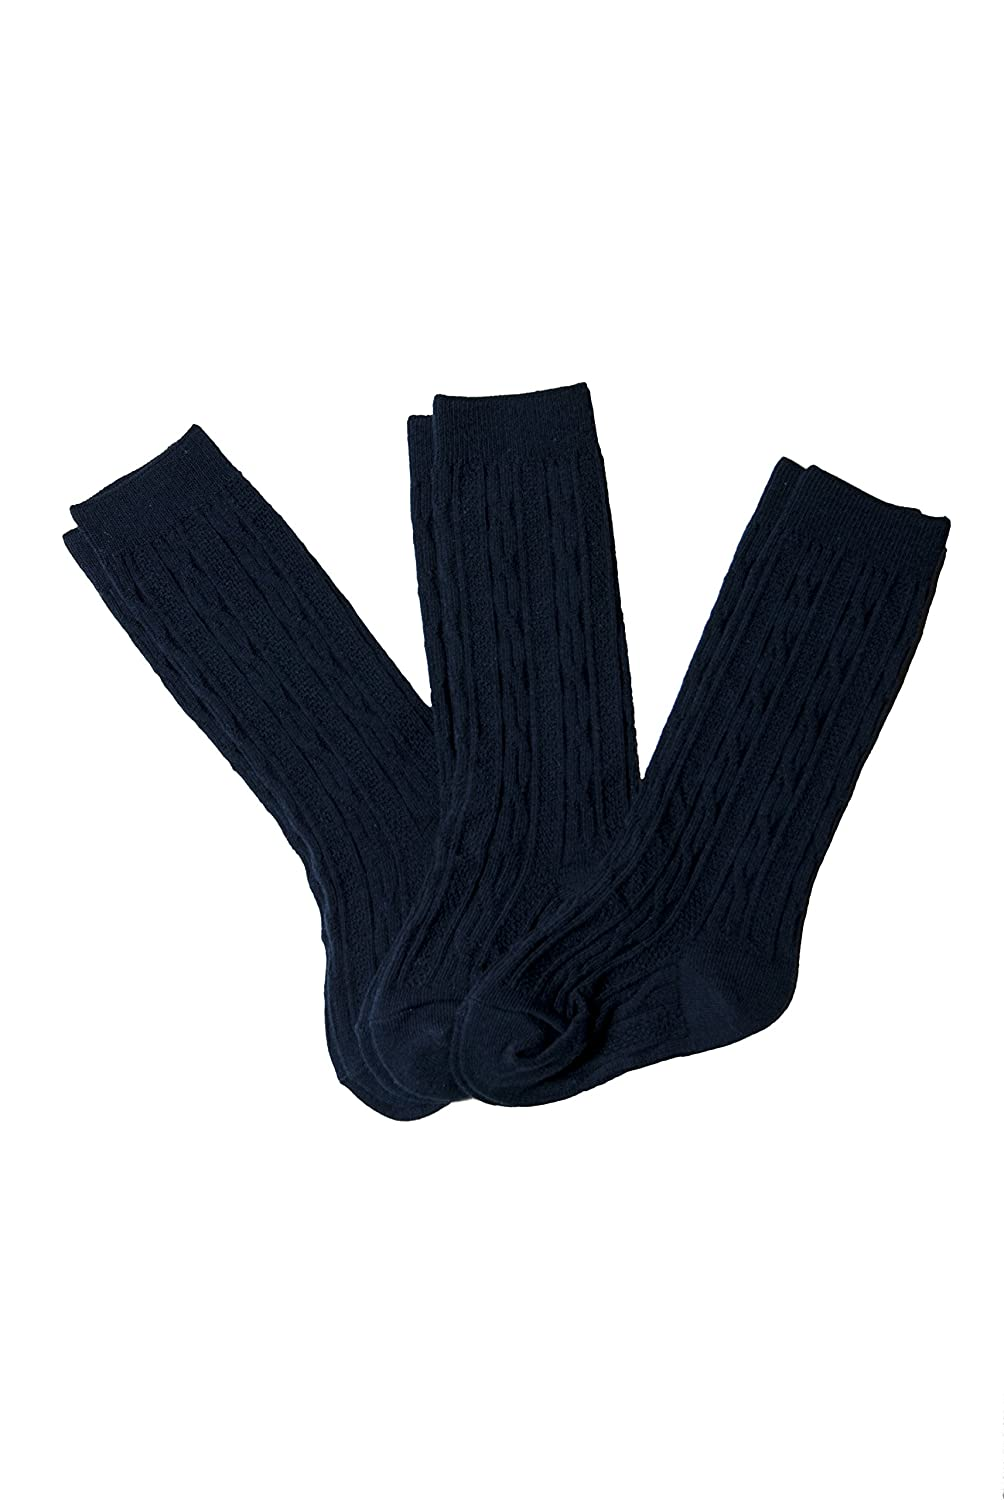 3 Pack French Toast Big Girls Uniform Cable Knee High Socks